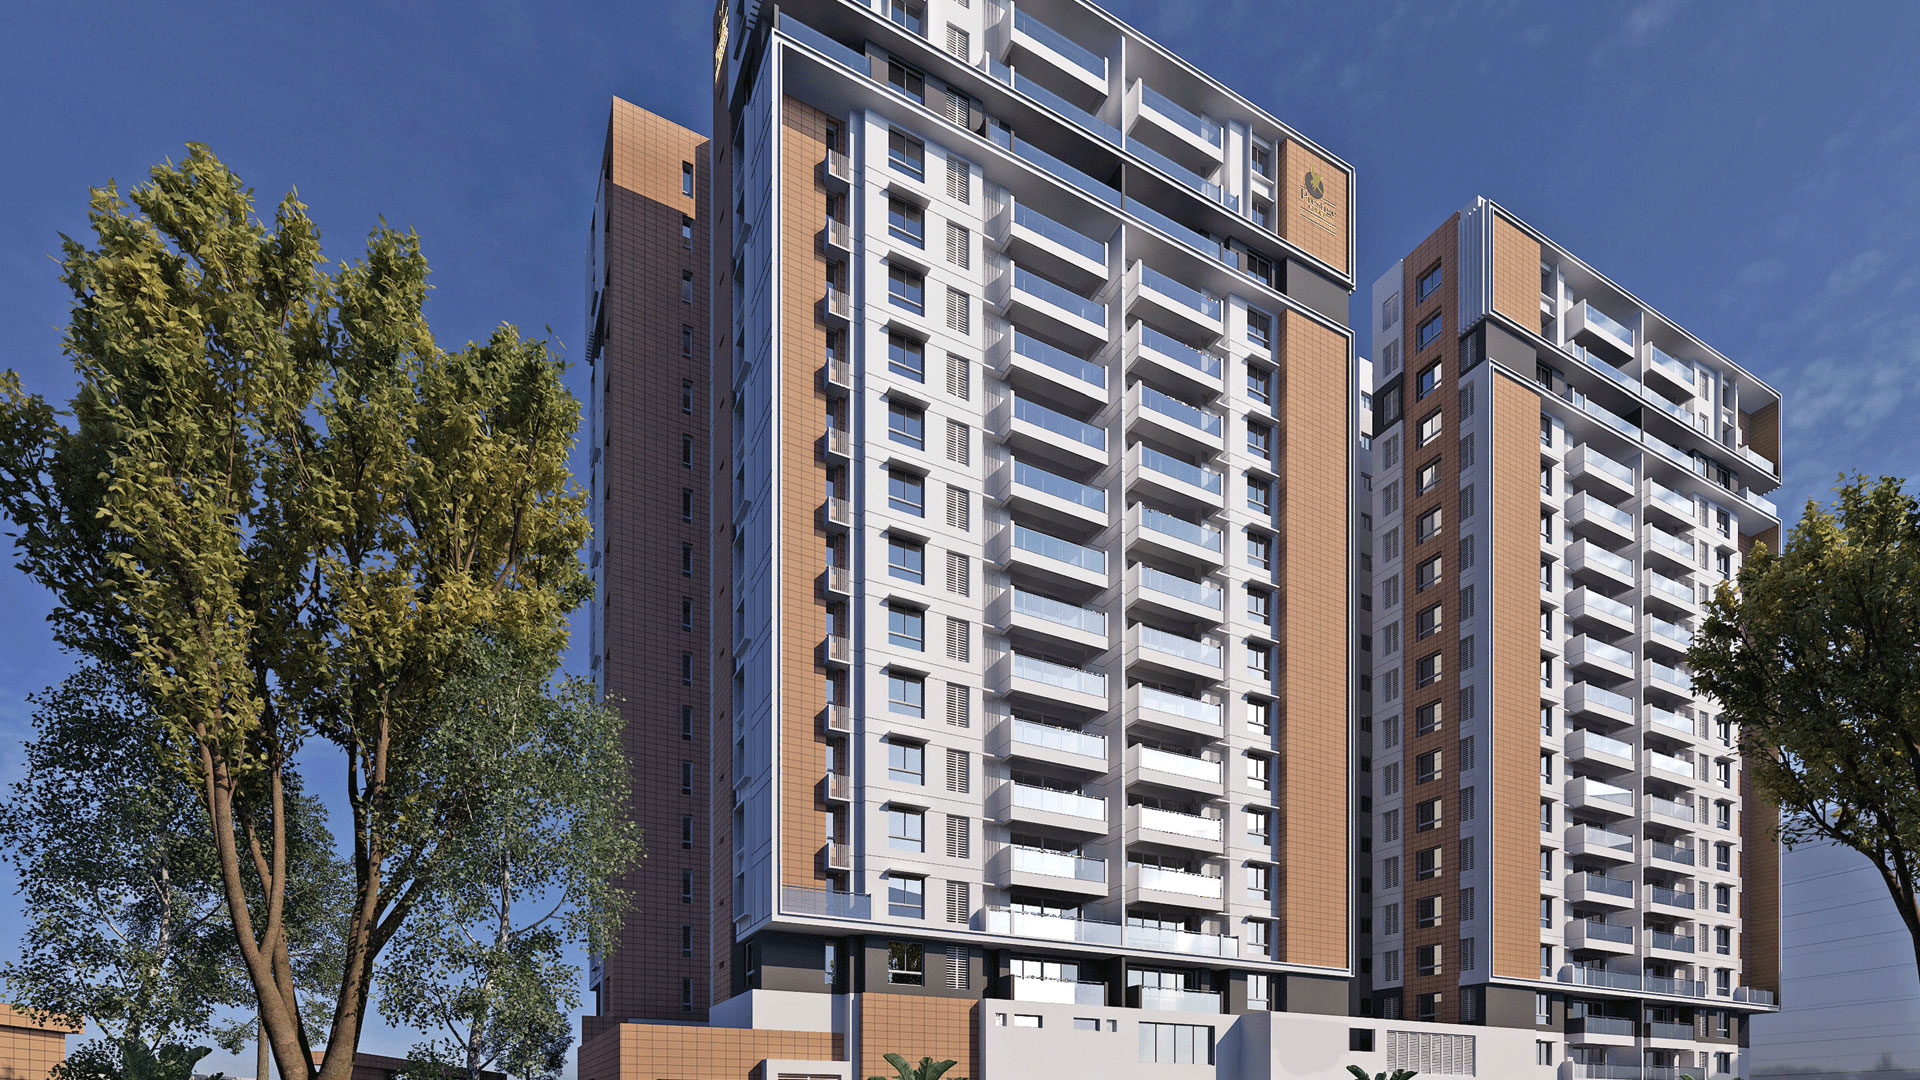 prestige-woodland-park-in-cooke-town-Bangalore-image-04